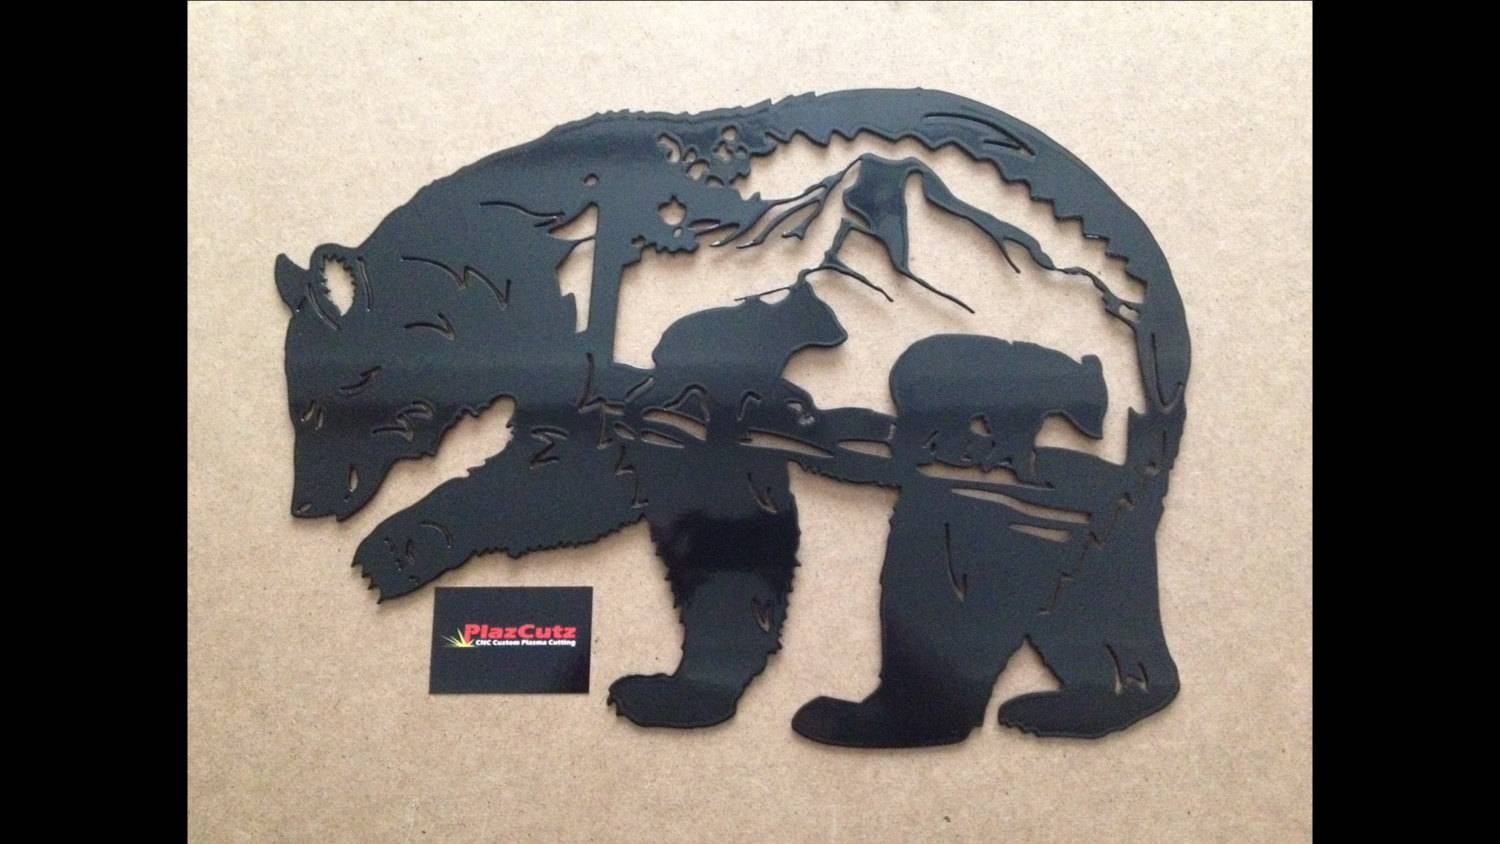 Bear Scene Metal Wall Art Plaque Cnc Plasma Cut And Powder With Most Current Plasma Cut Metal Wall Art (View 4 of 20)